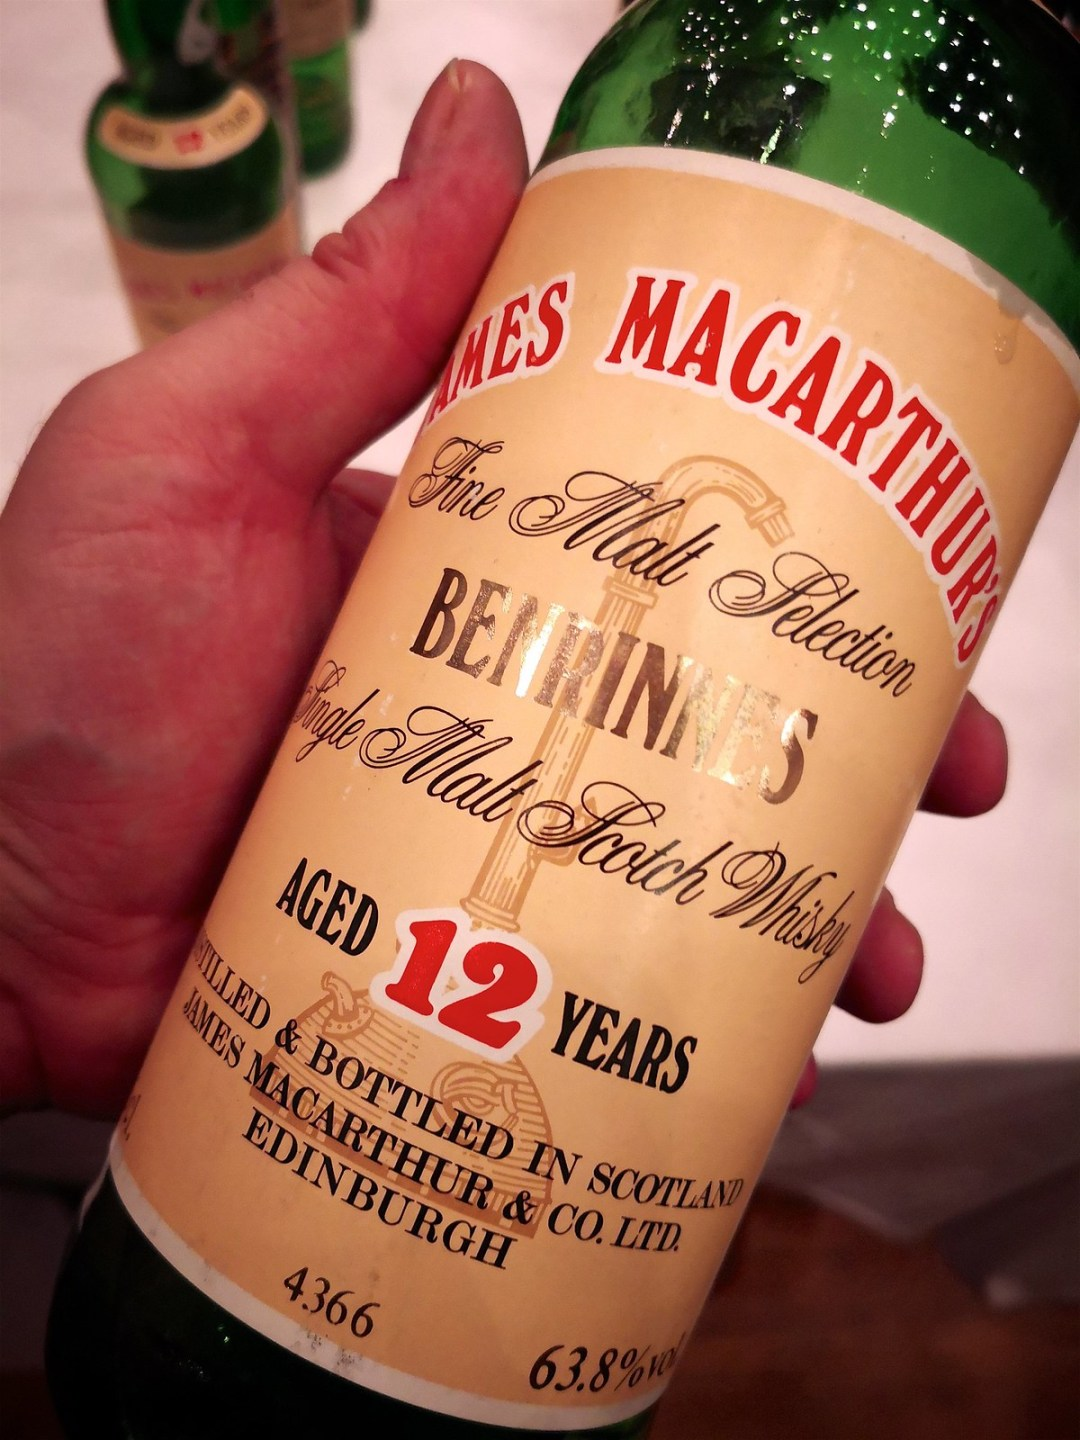 James Macarthur's Benrinnes 12 Years Old